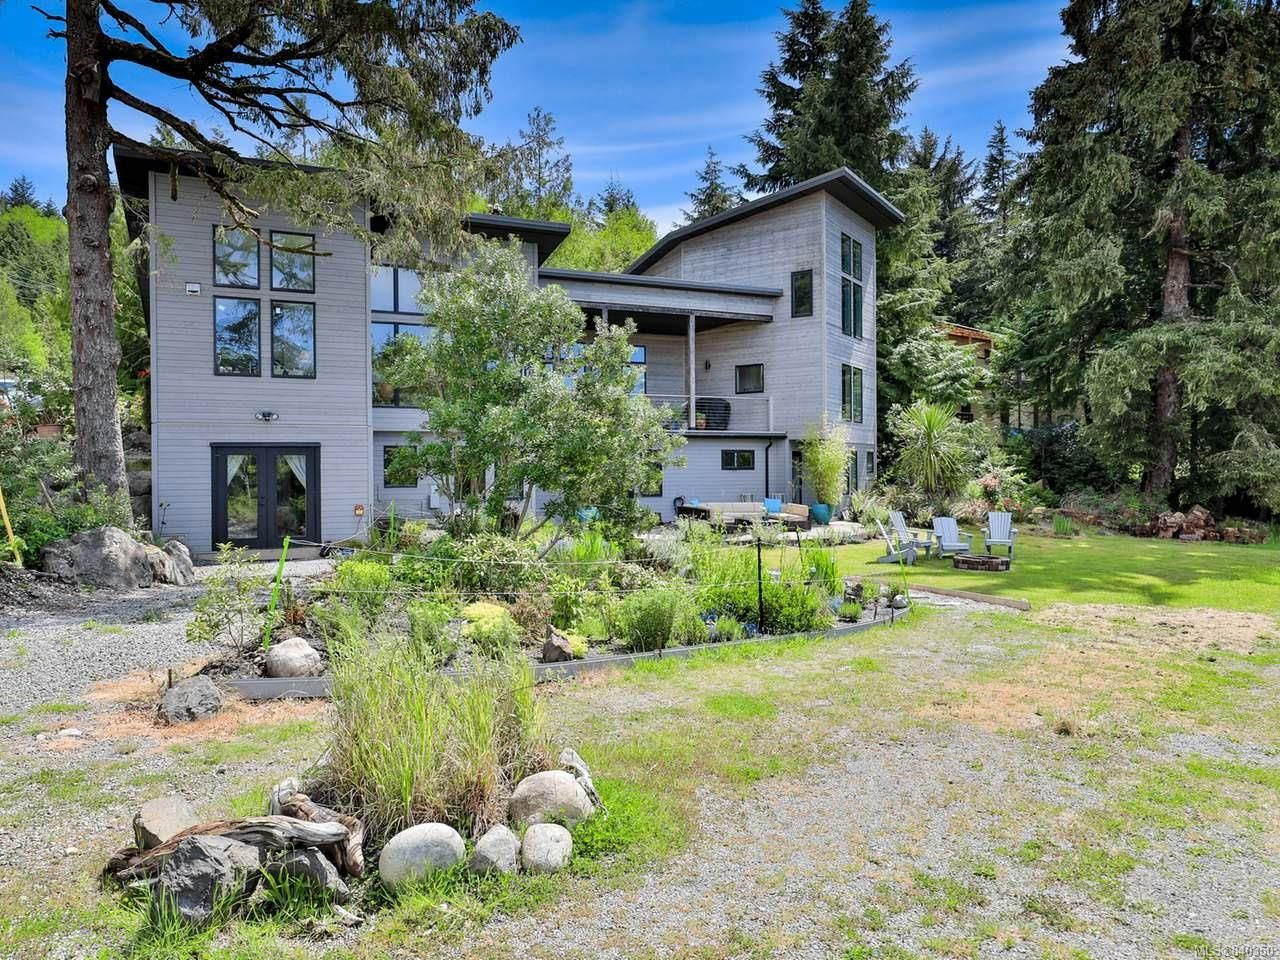 Photo 57: Photos: 1068 Helen Rd in UCLUELET: PA Ucluelet House for sale (Port Alberni)  : MLS®# 840350